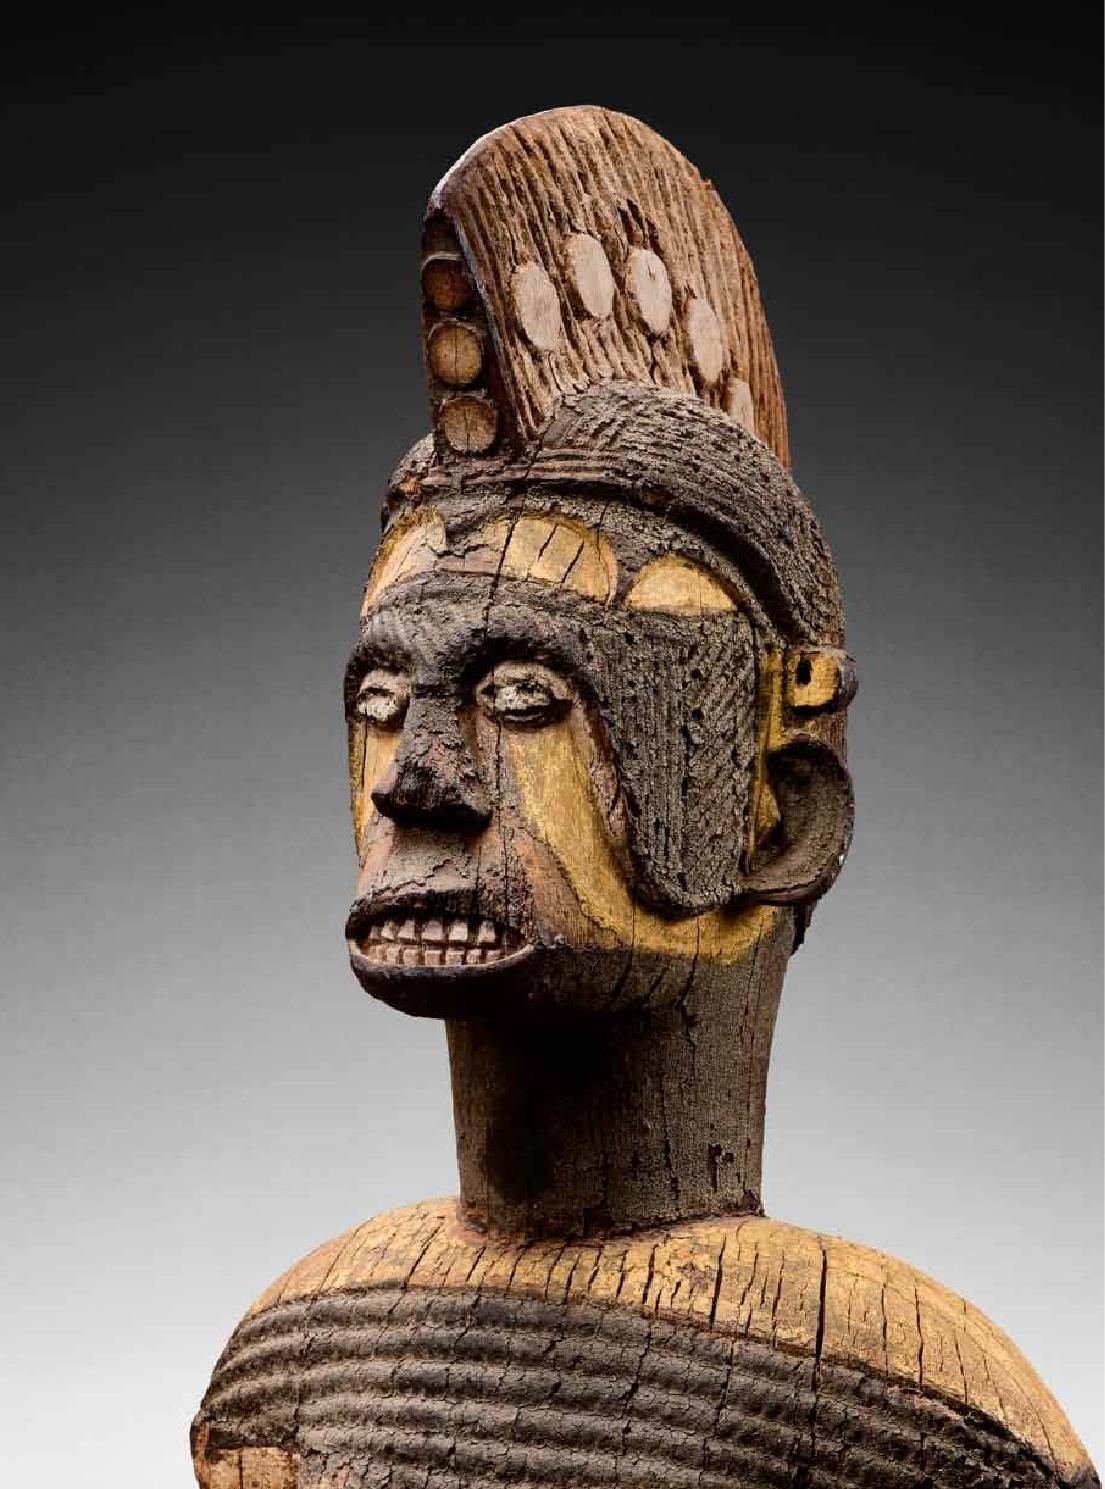 ISSUU - IGBO Monumental sculptures from Nigeria - Bernard de Grunne - 2010 par ArtSolution sprl